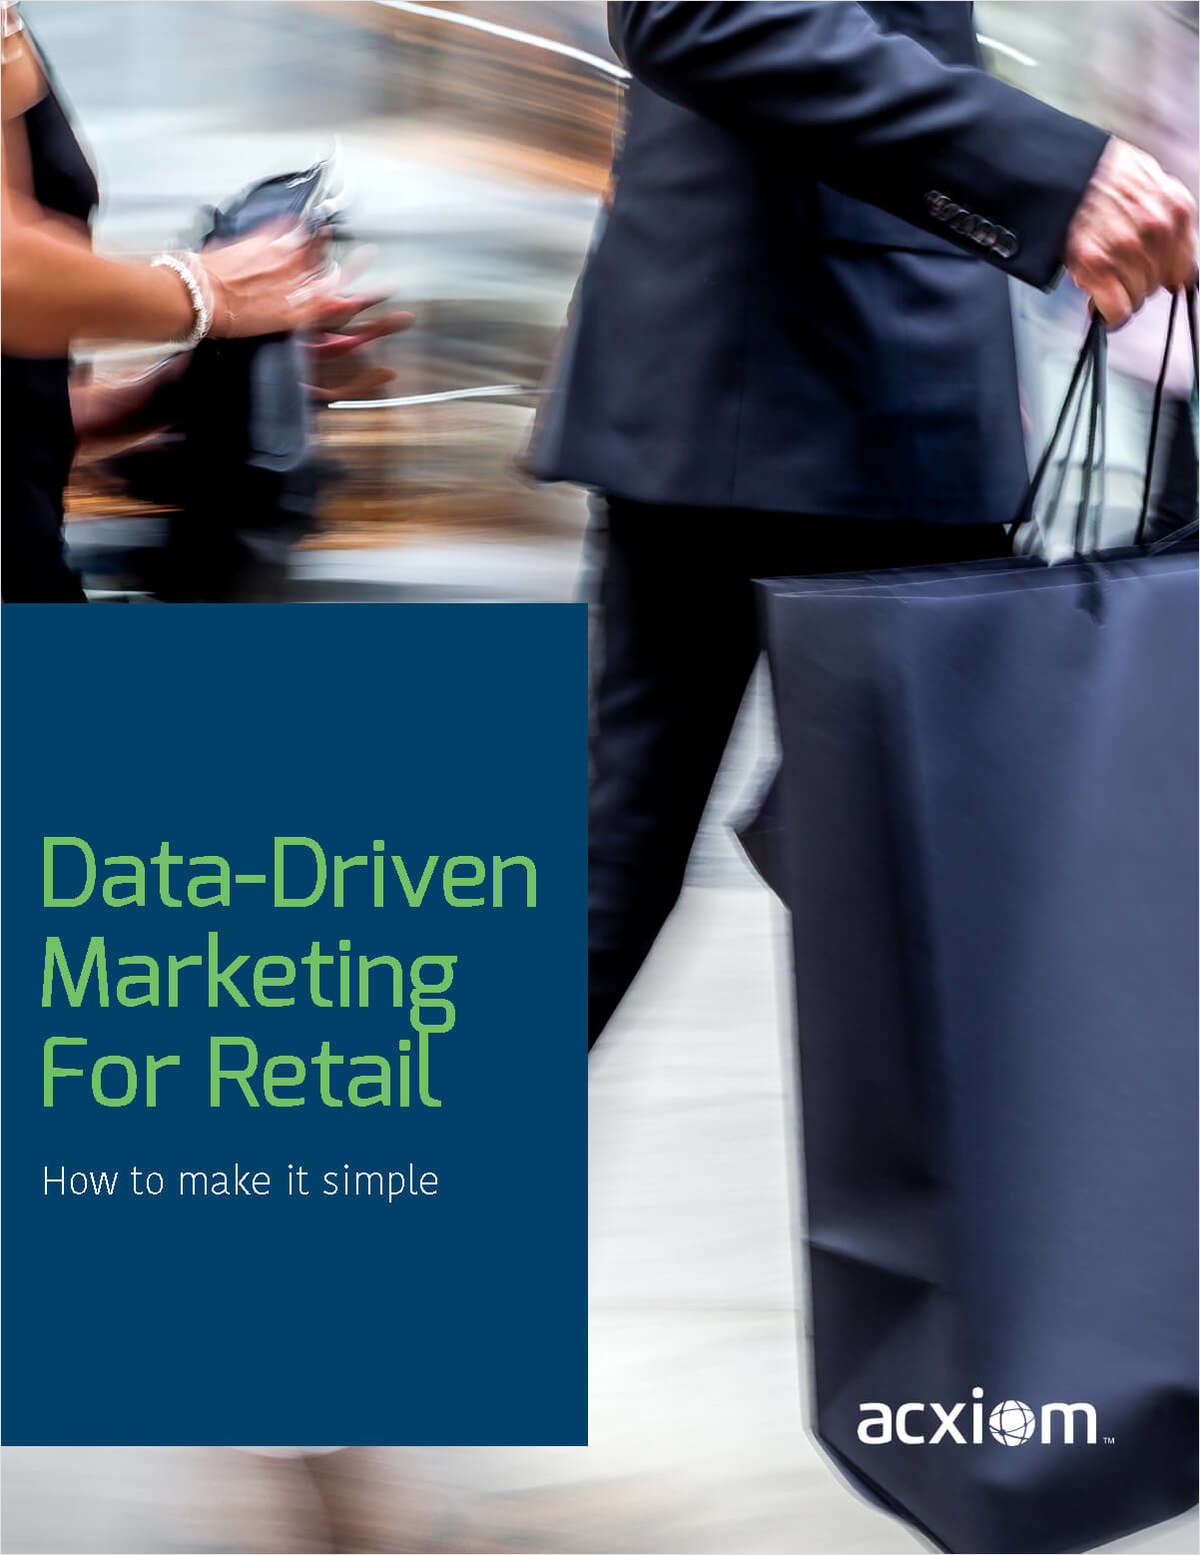 Data-Driven Marketing for Retail: